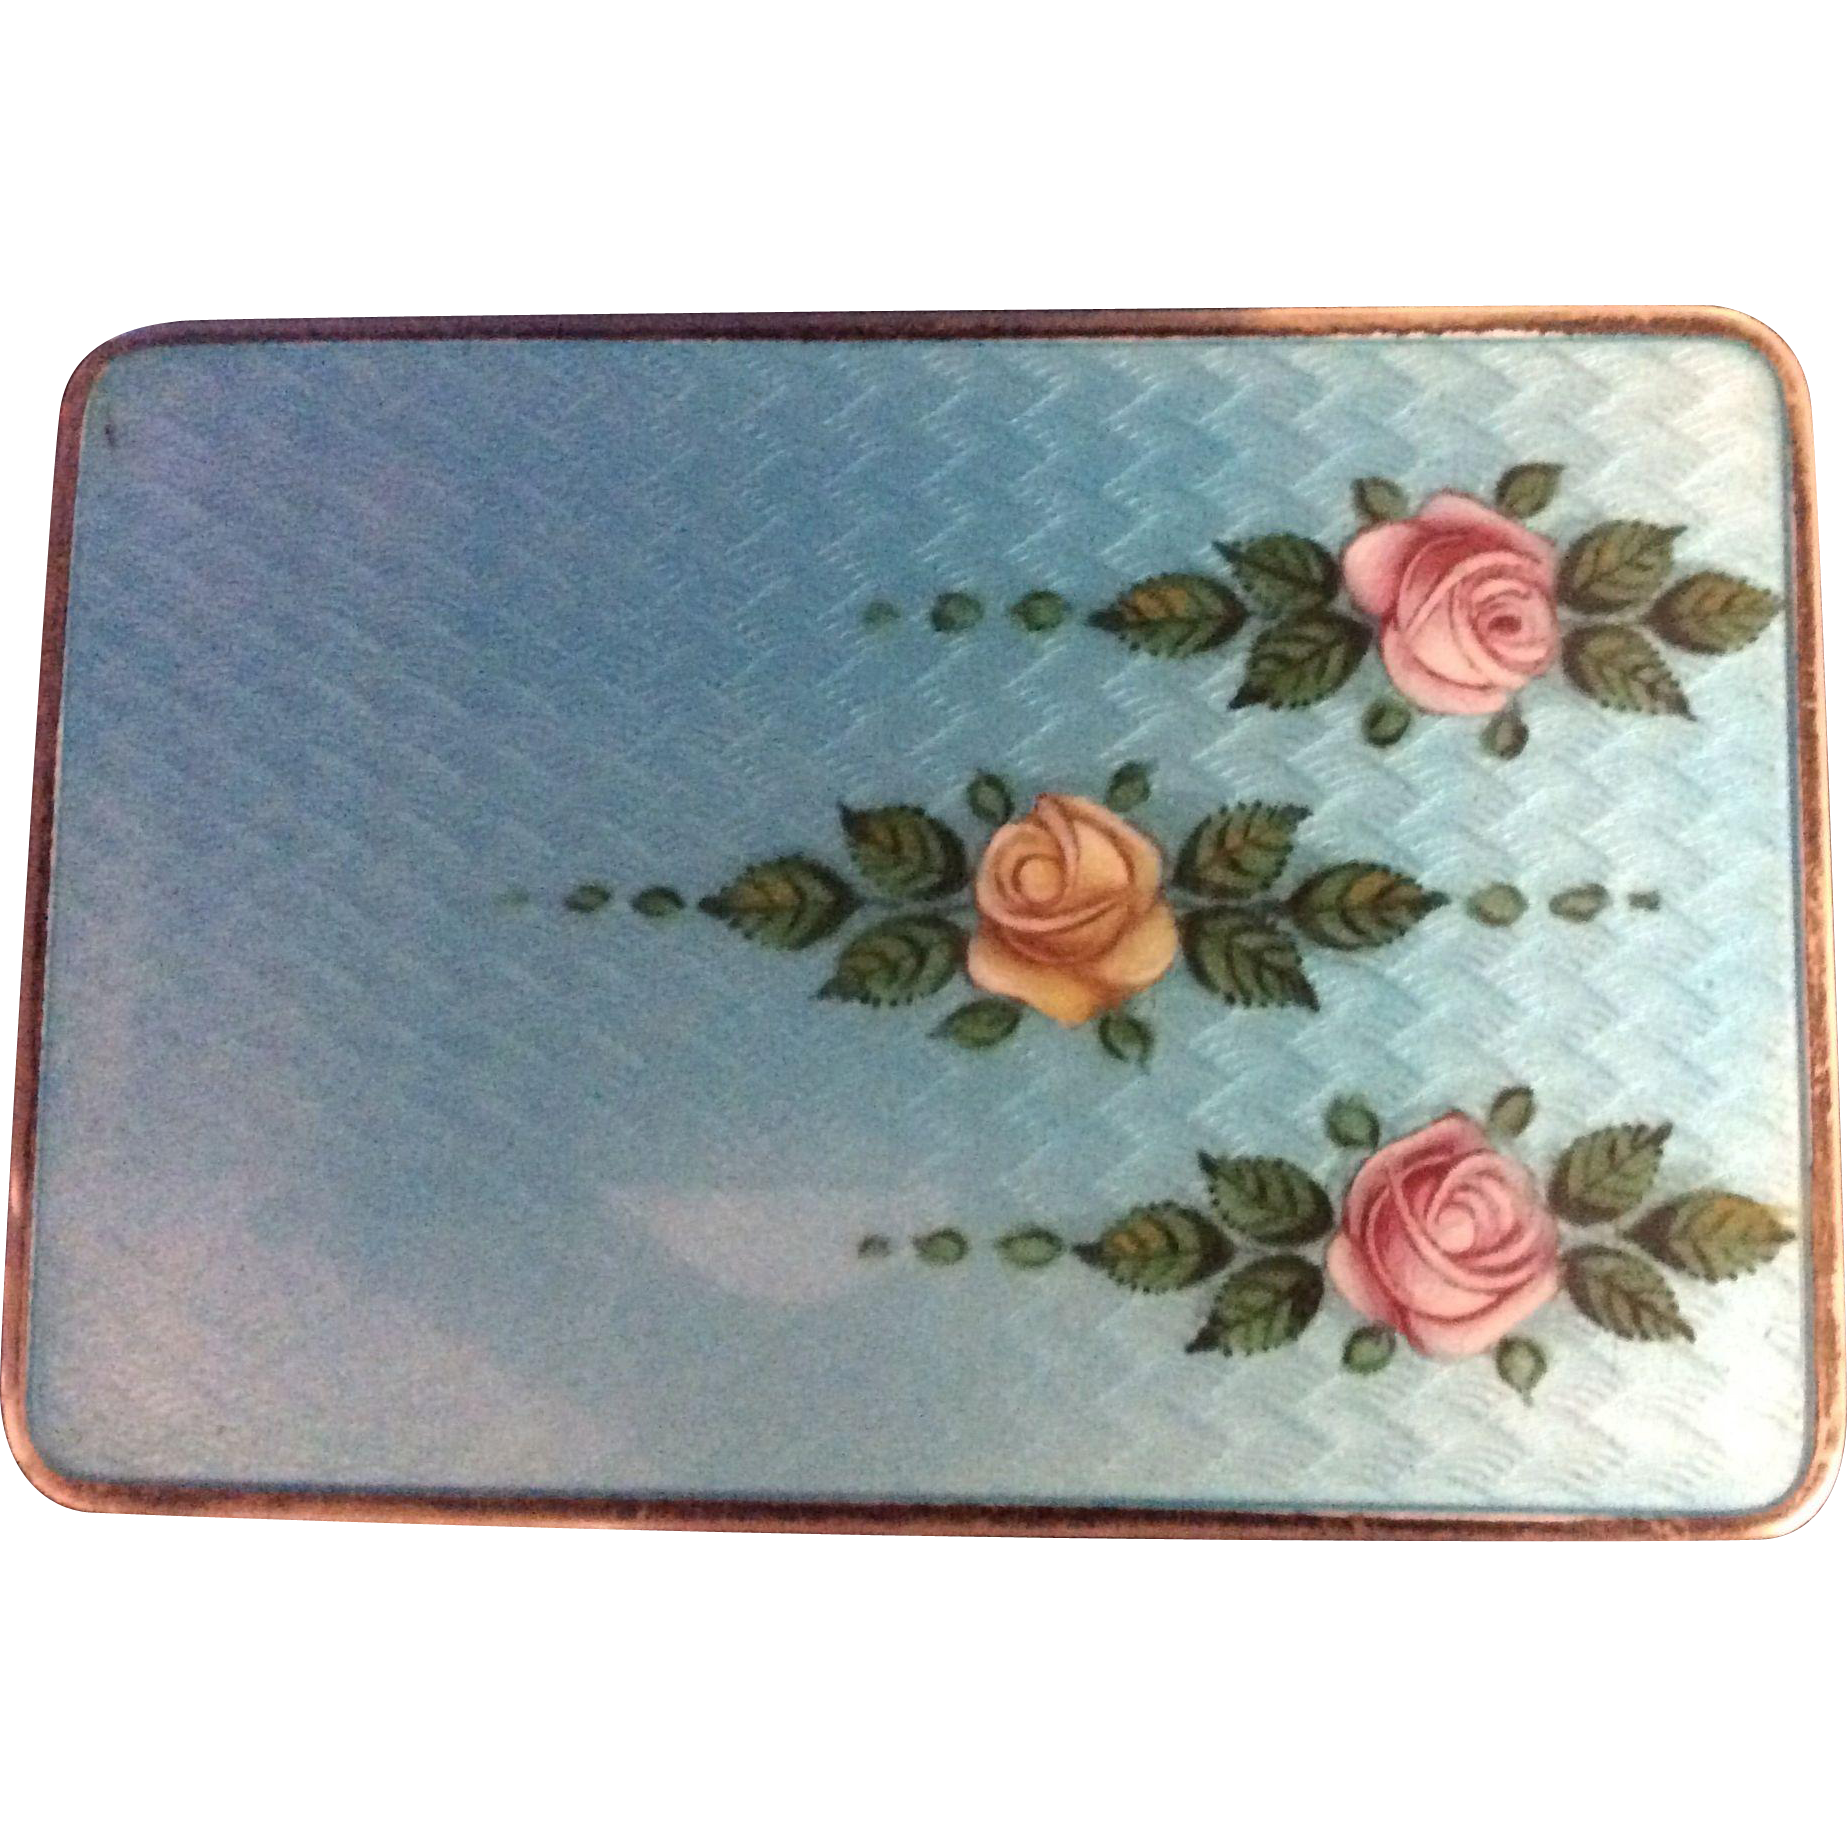 Magnificent Sterling silver Enamel Box or Case